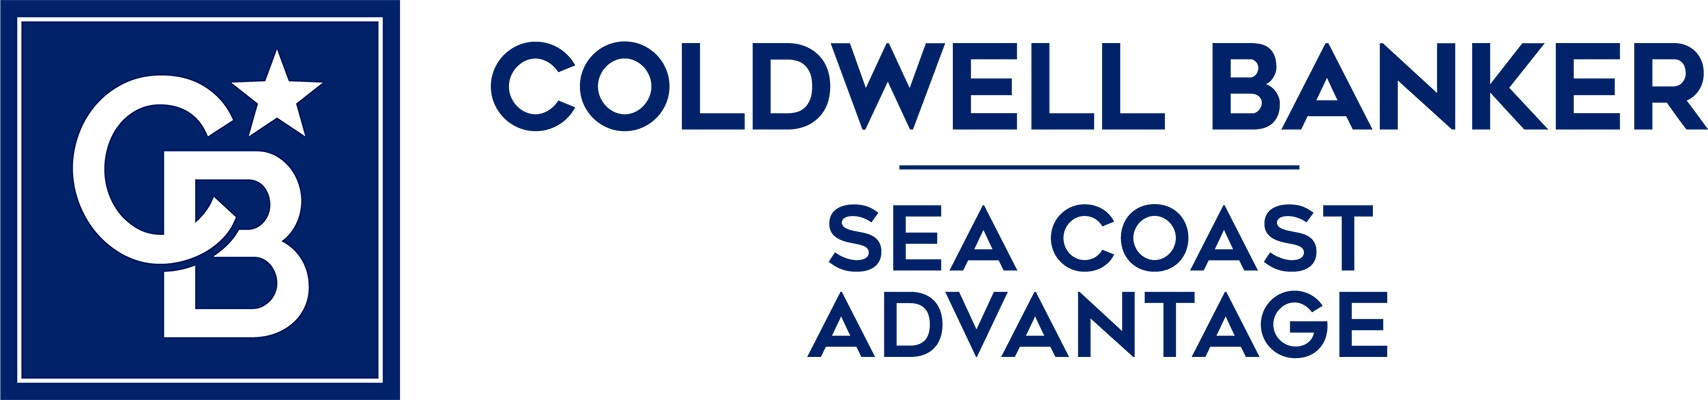 Michelle Powell - Coldwell Banker Sea Coast Advantage Realty Logo